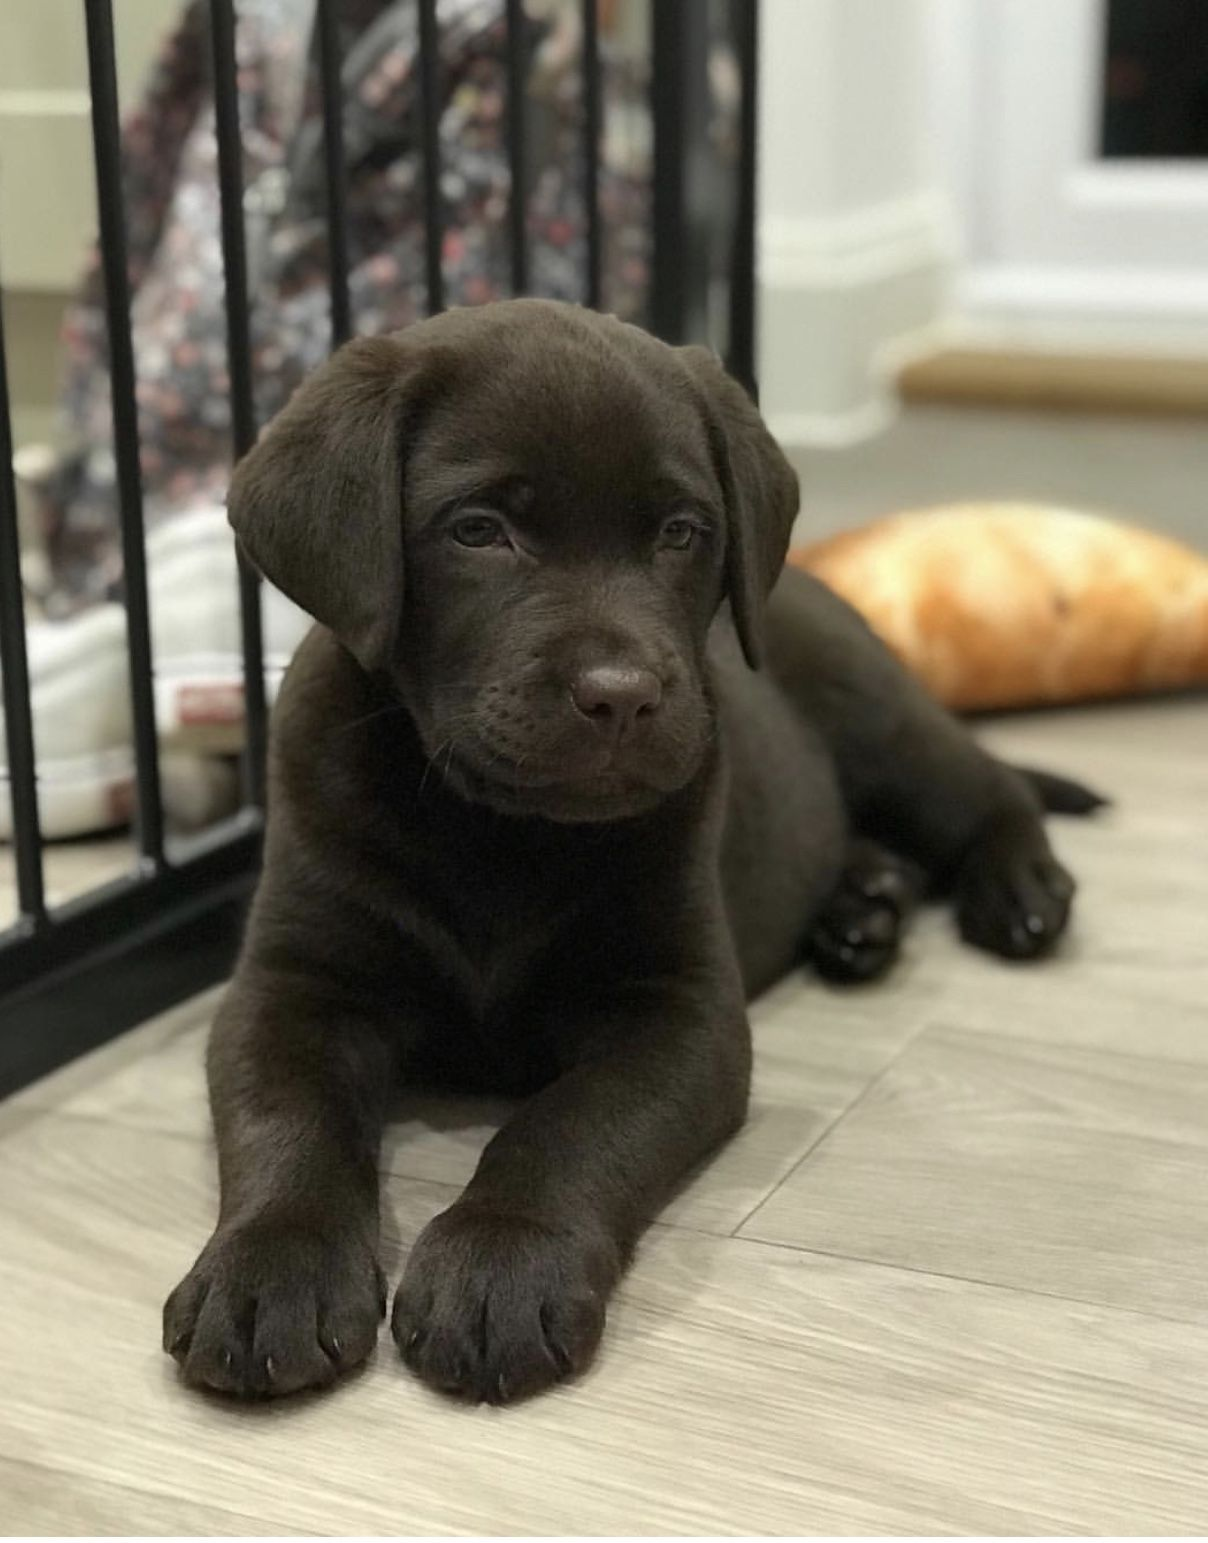 A 8 Week Old Chocolate Labrador Called Sully From Norfolk Follow Him On Instagram For Regular Pupda Labrador Puppy Labrador Puppy Training Labrador Retriever